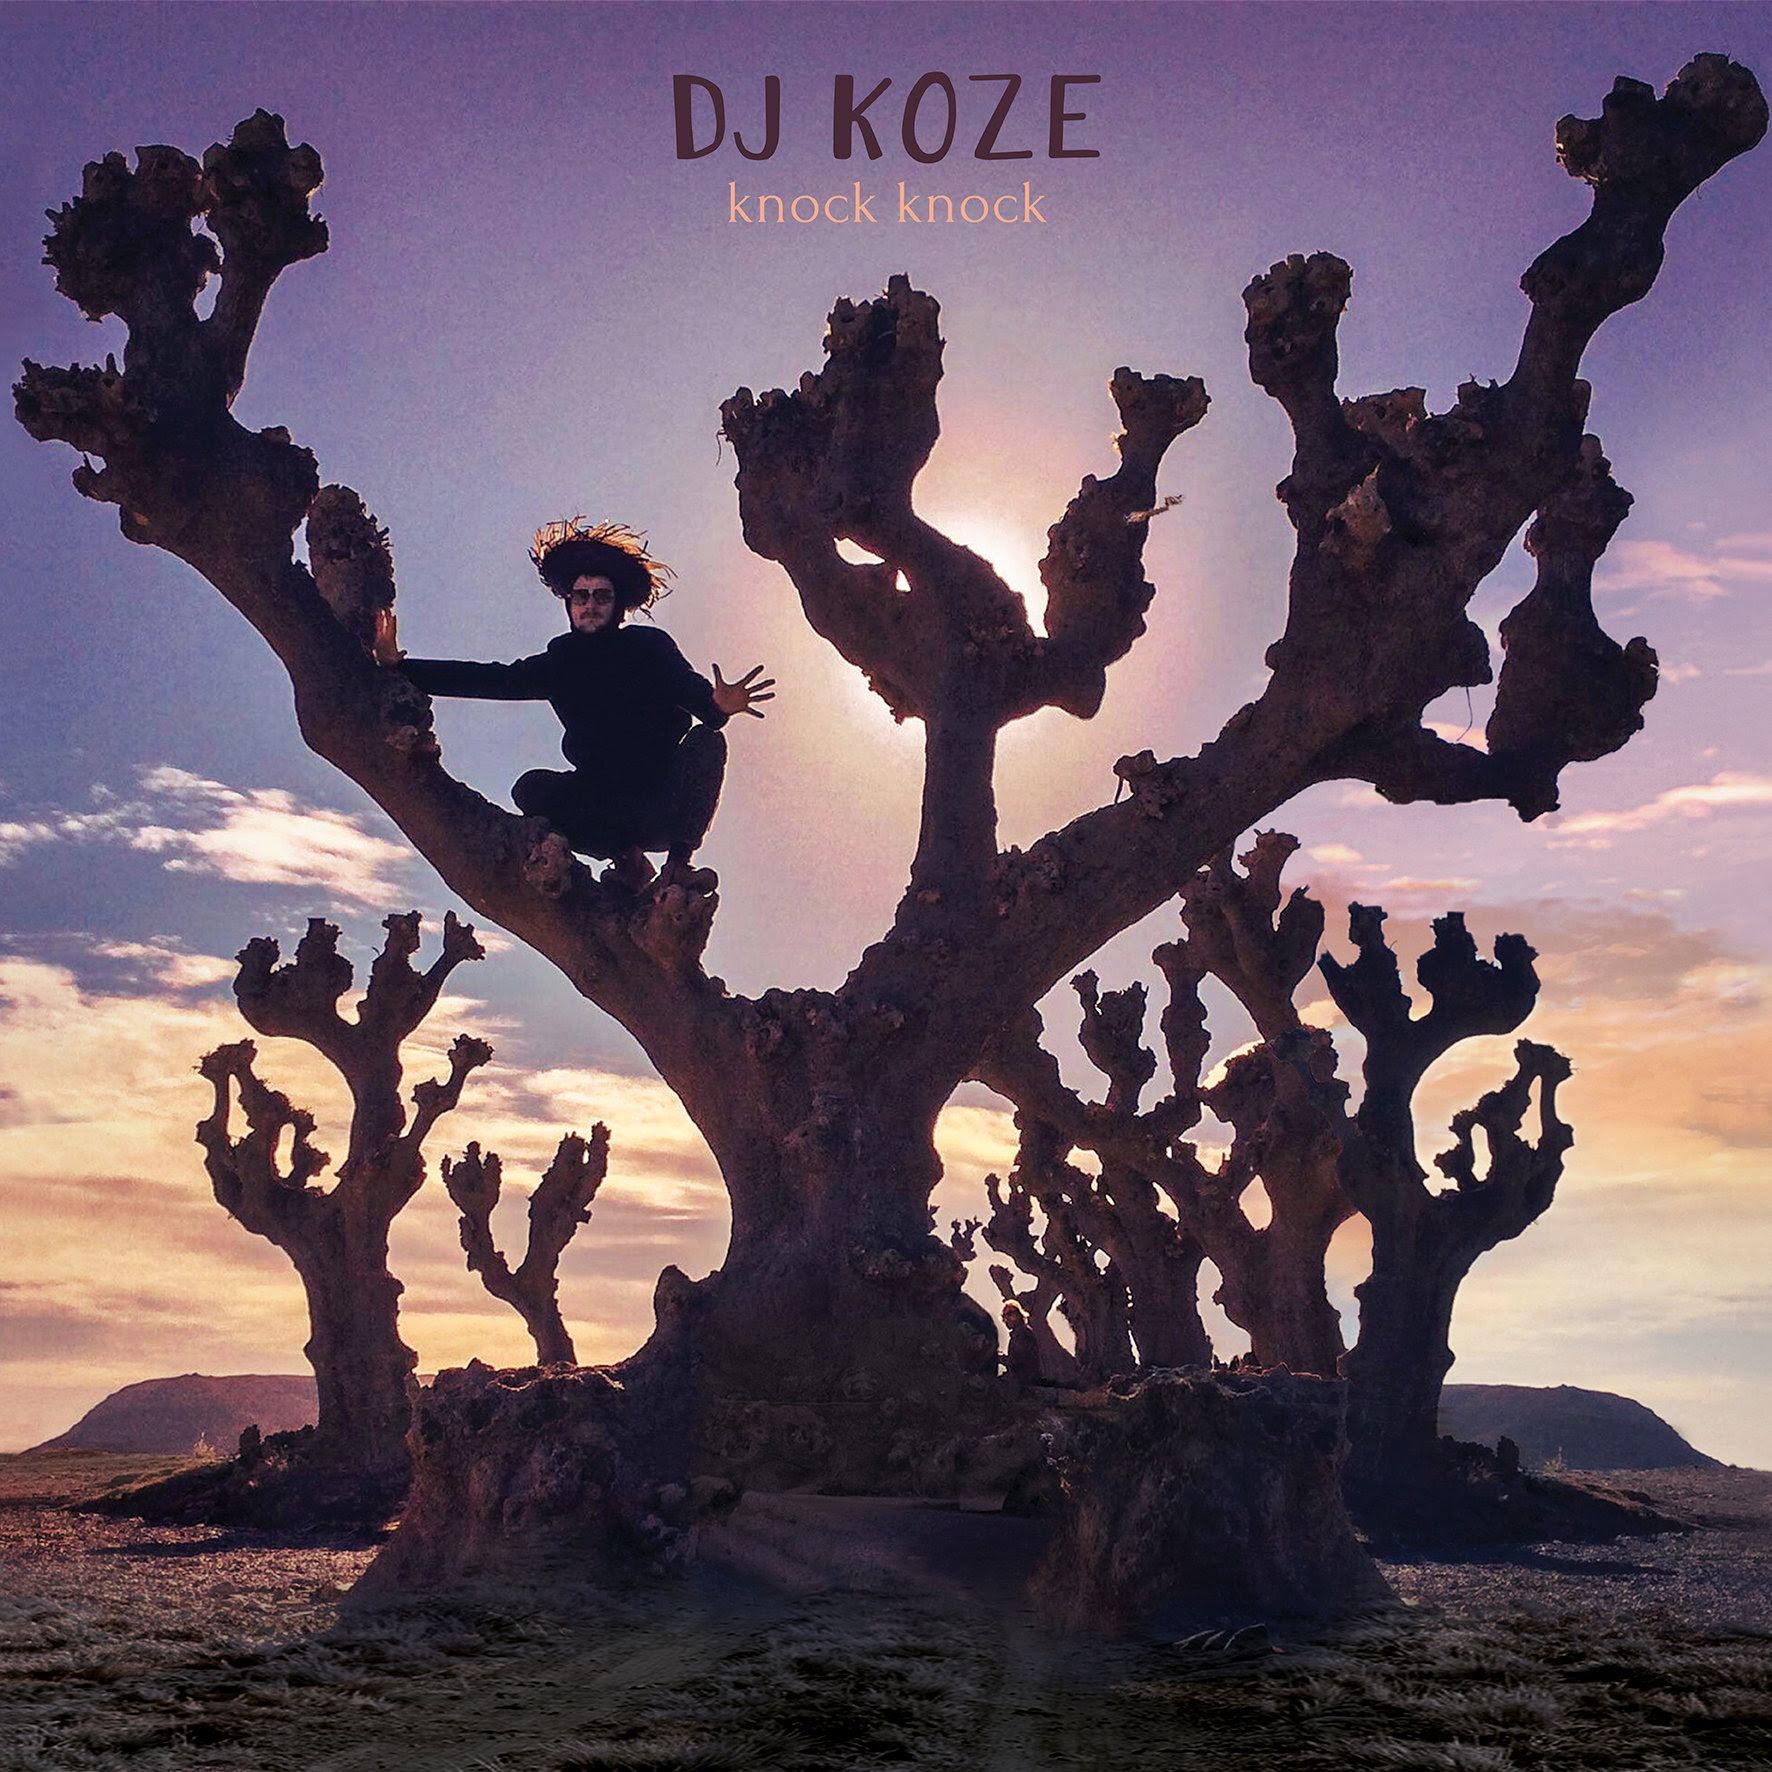 DJ Koze turns one  his favorite Bon Iver songs into something new on upcoming album Knock Knock